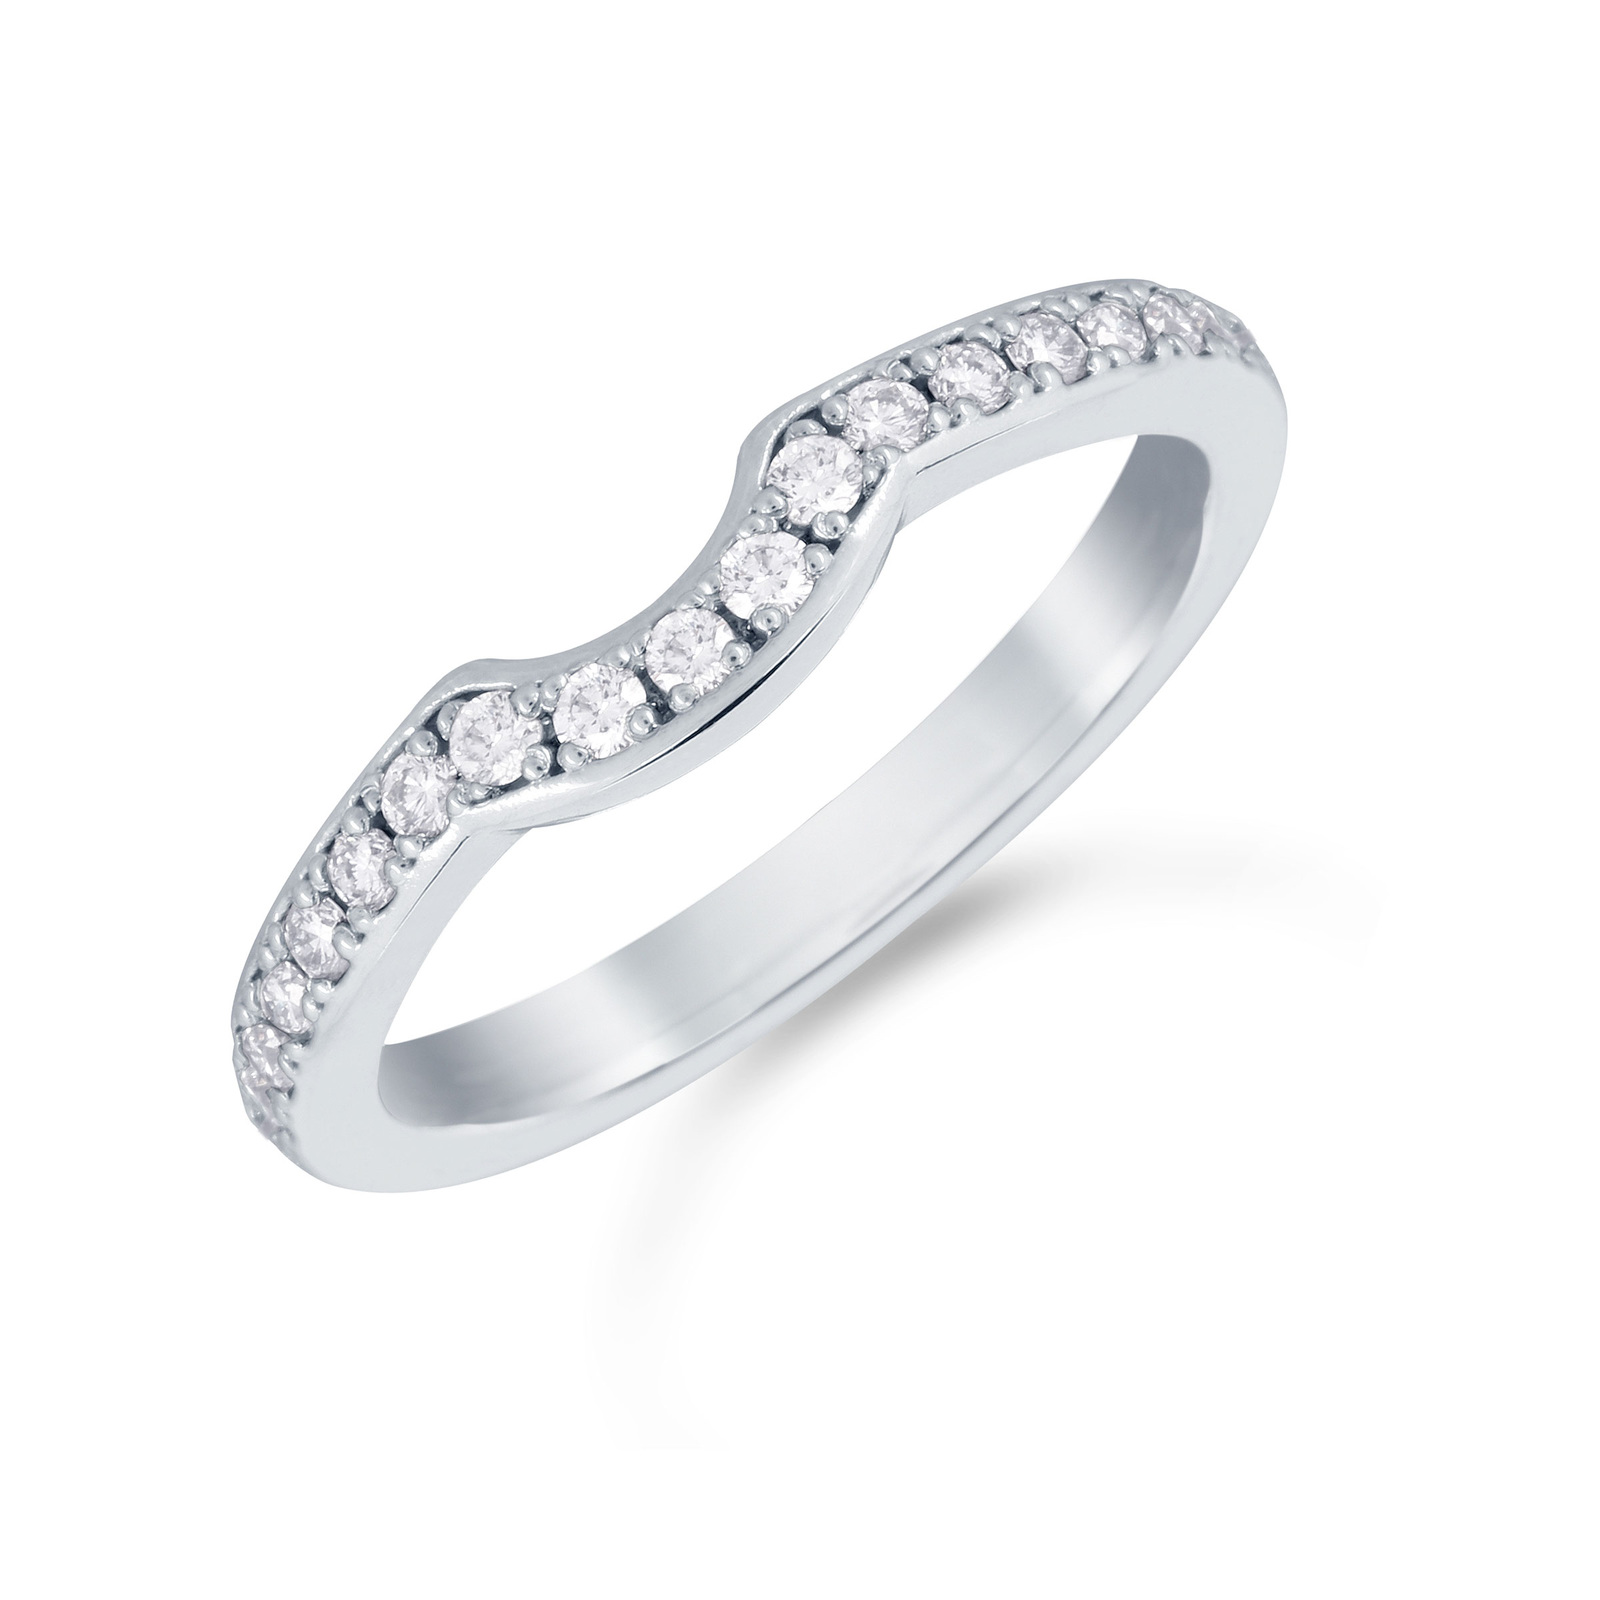 Mappin & Webb Platinum 0.22cttw Diamond Boscobel Wedding Ring